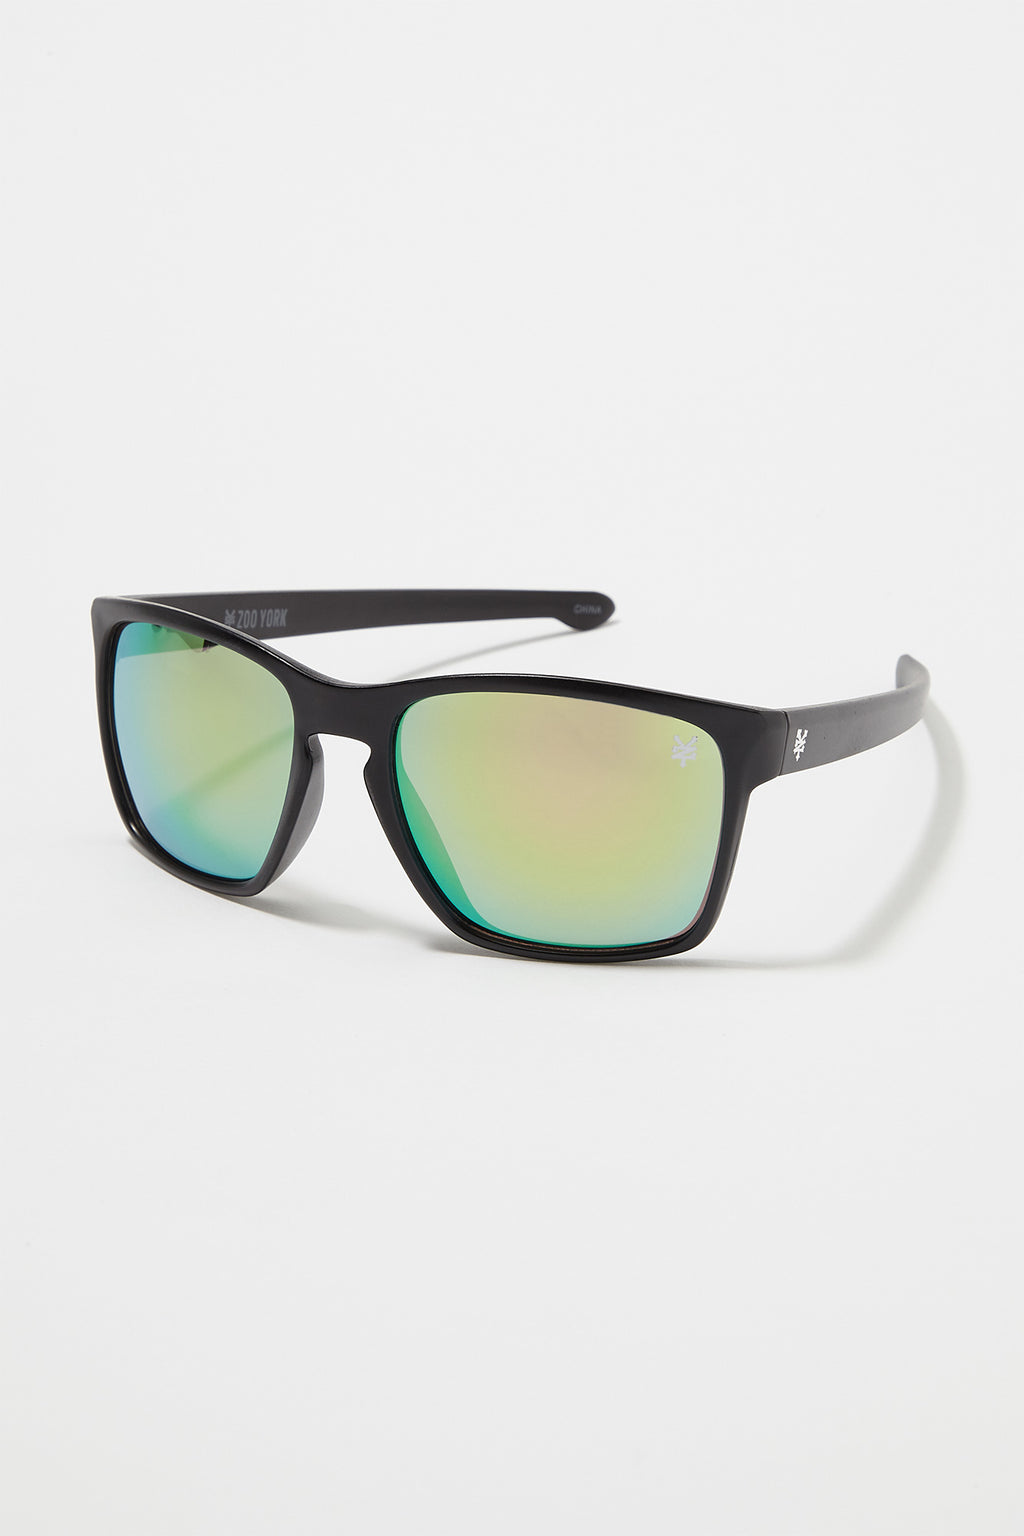 Zoo York Mens Revo Square Sunglasses